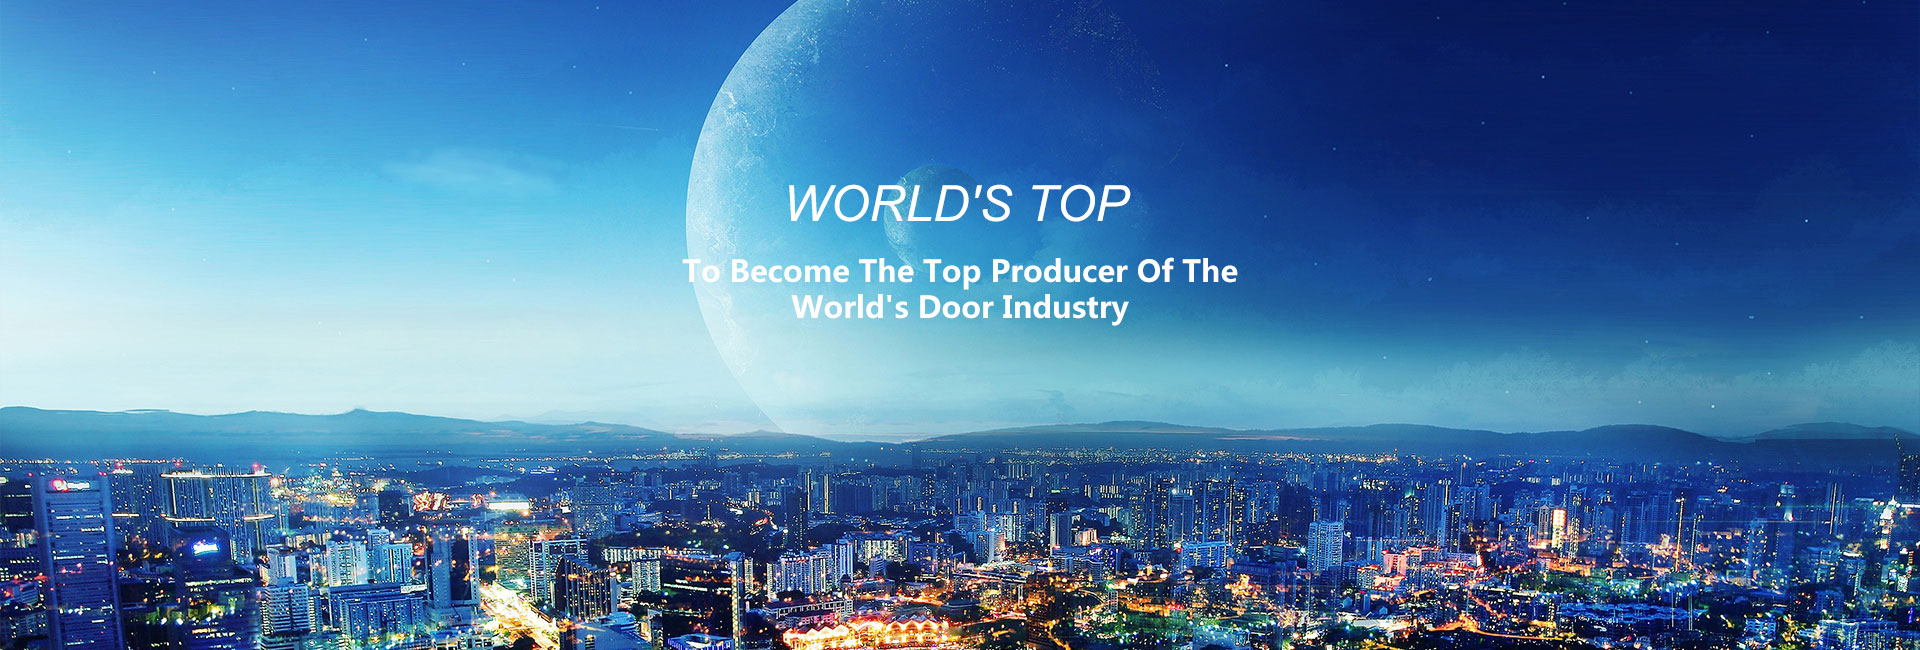 To Become The Top Producer Of The World's Door Industry